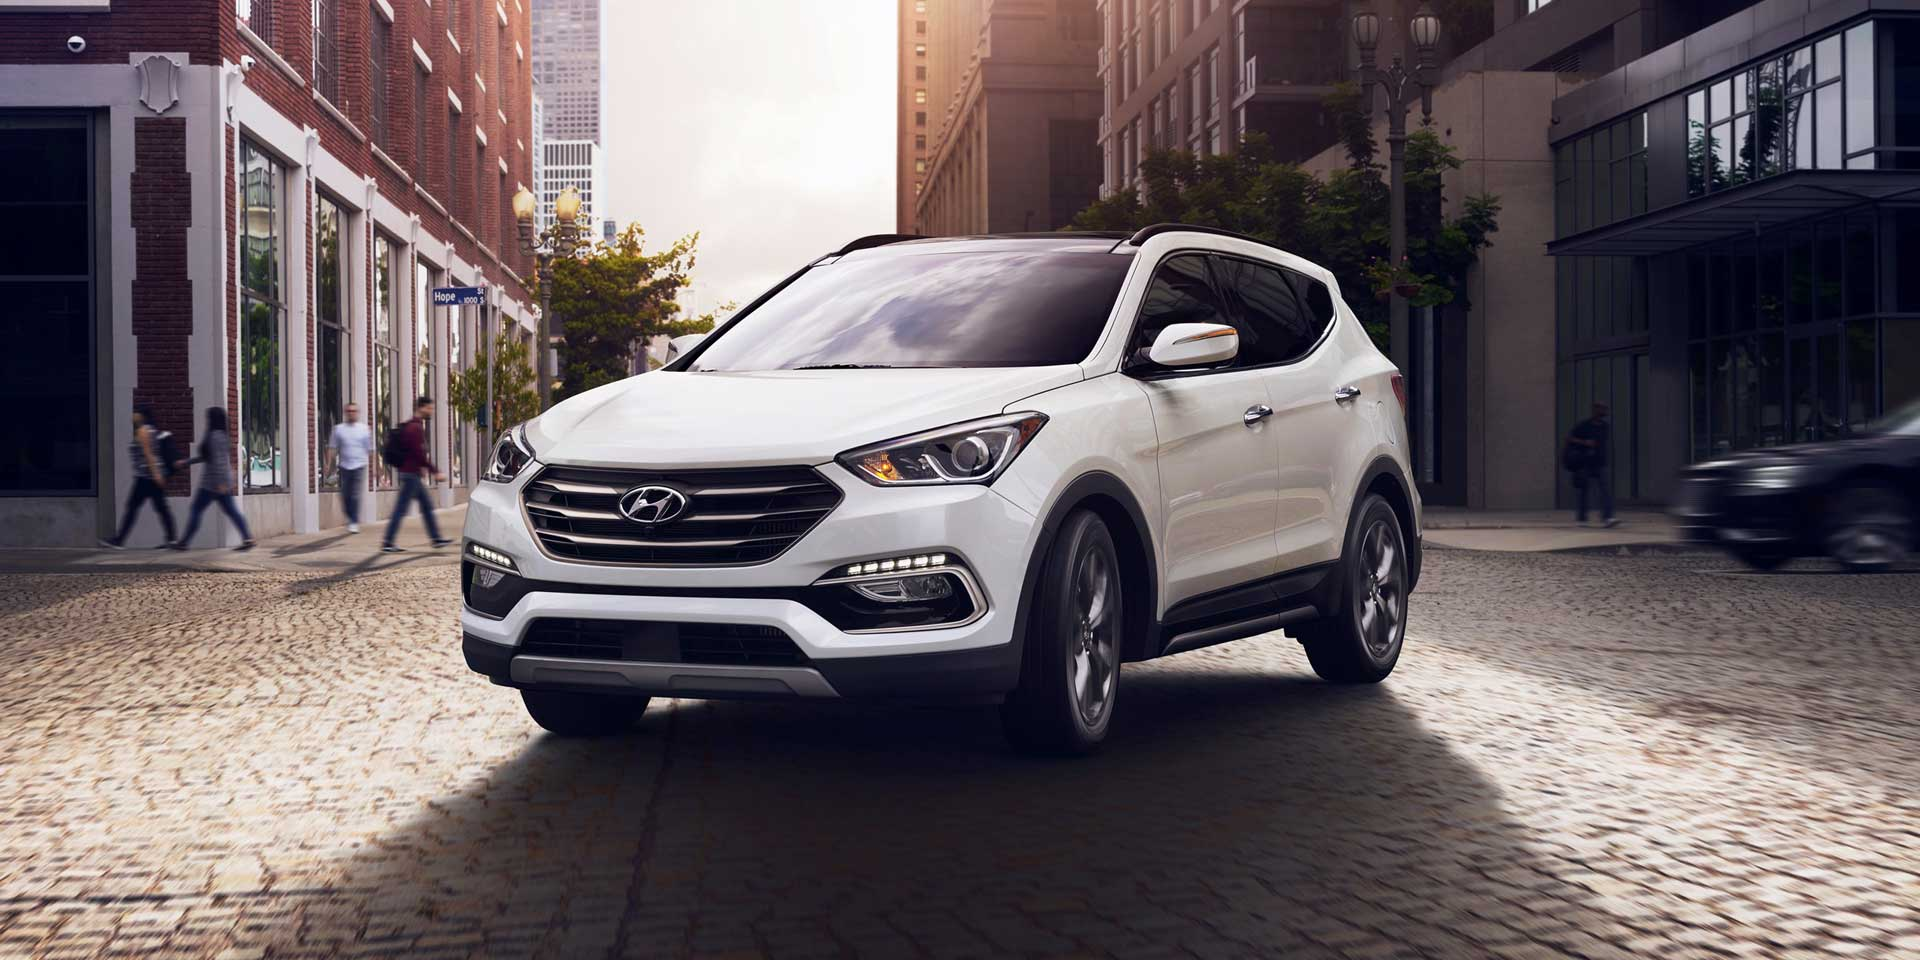 near sport santa in vehicles connecticut ct new groton dealer fe london featured hyundai sales cpo owned pre htm suv certified dealers